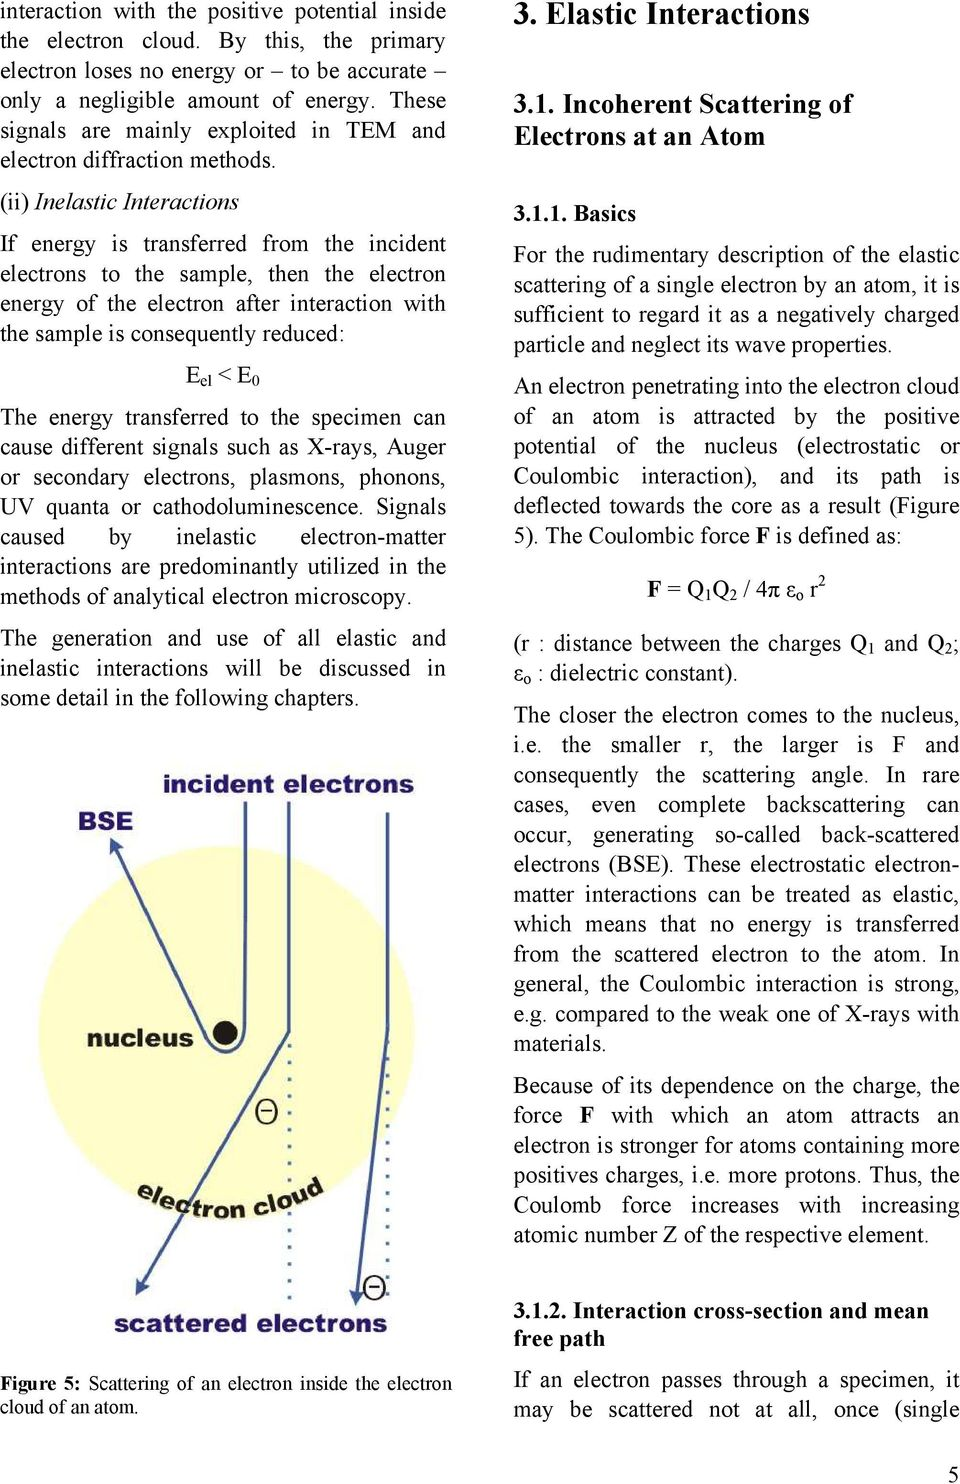 (ii) Inelastic Interactions If energy is transferred from the incident electrons to the sample, then the electron energy of the electron after interaction with the sample is consequently reduced: E